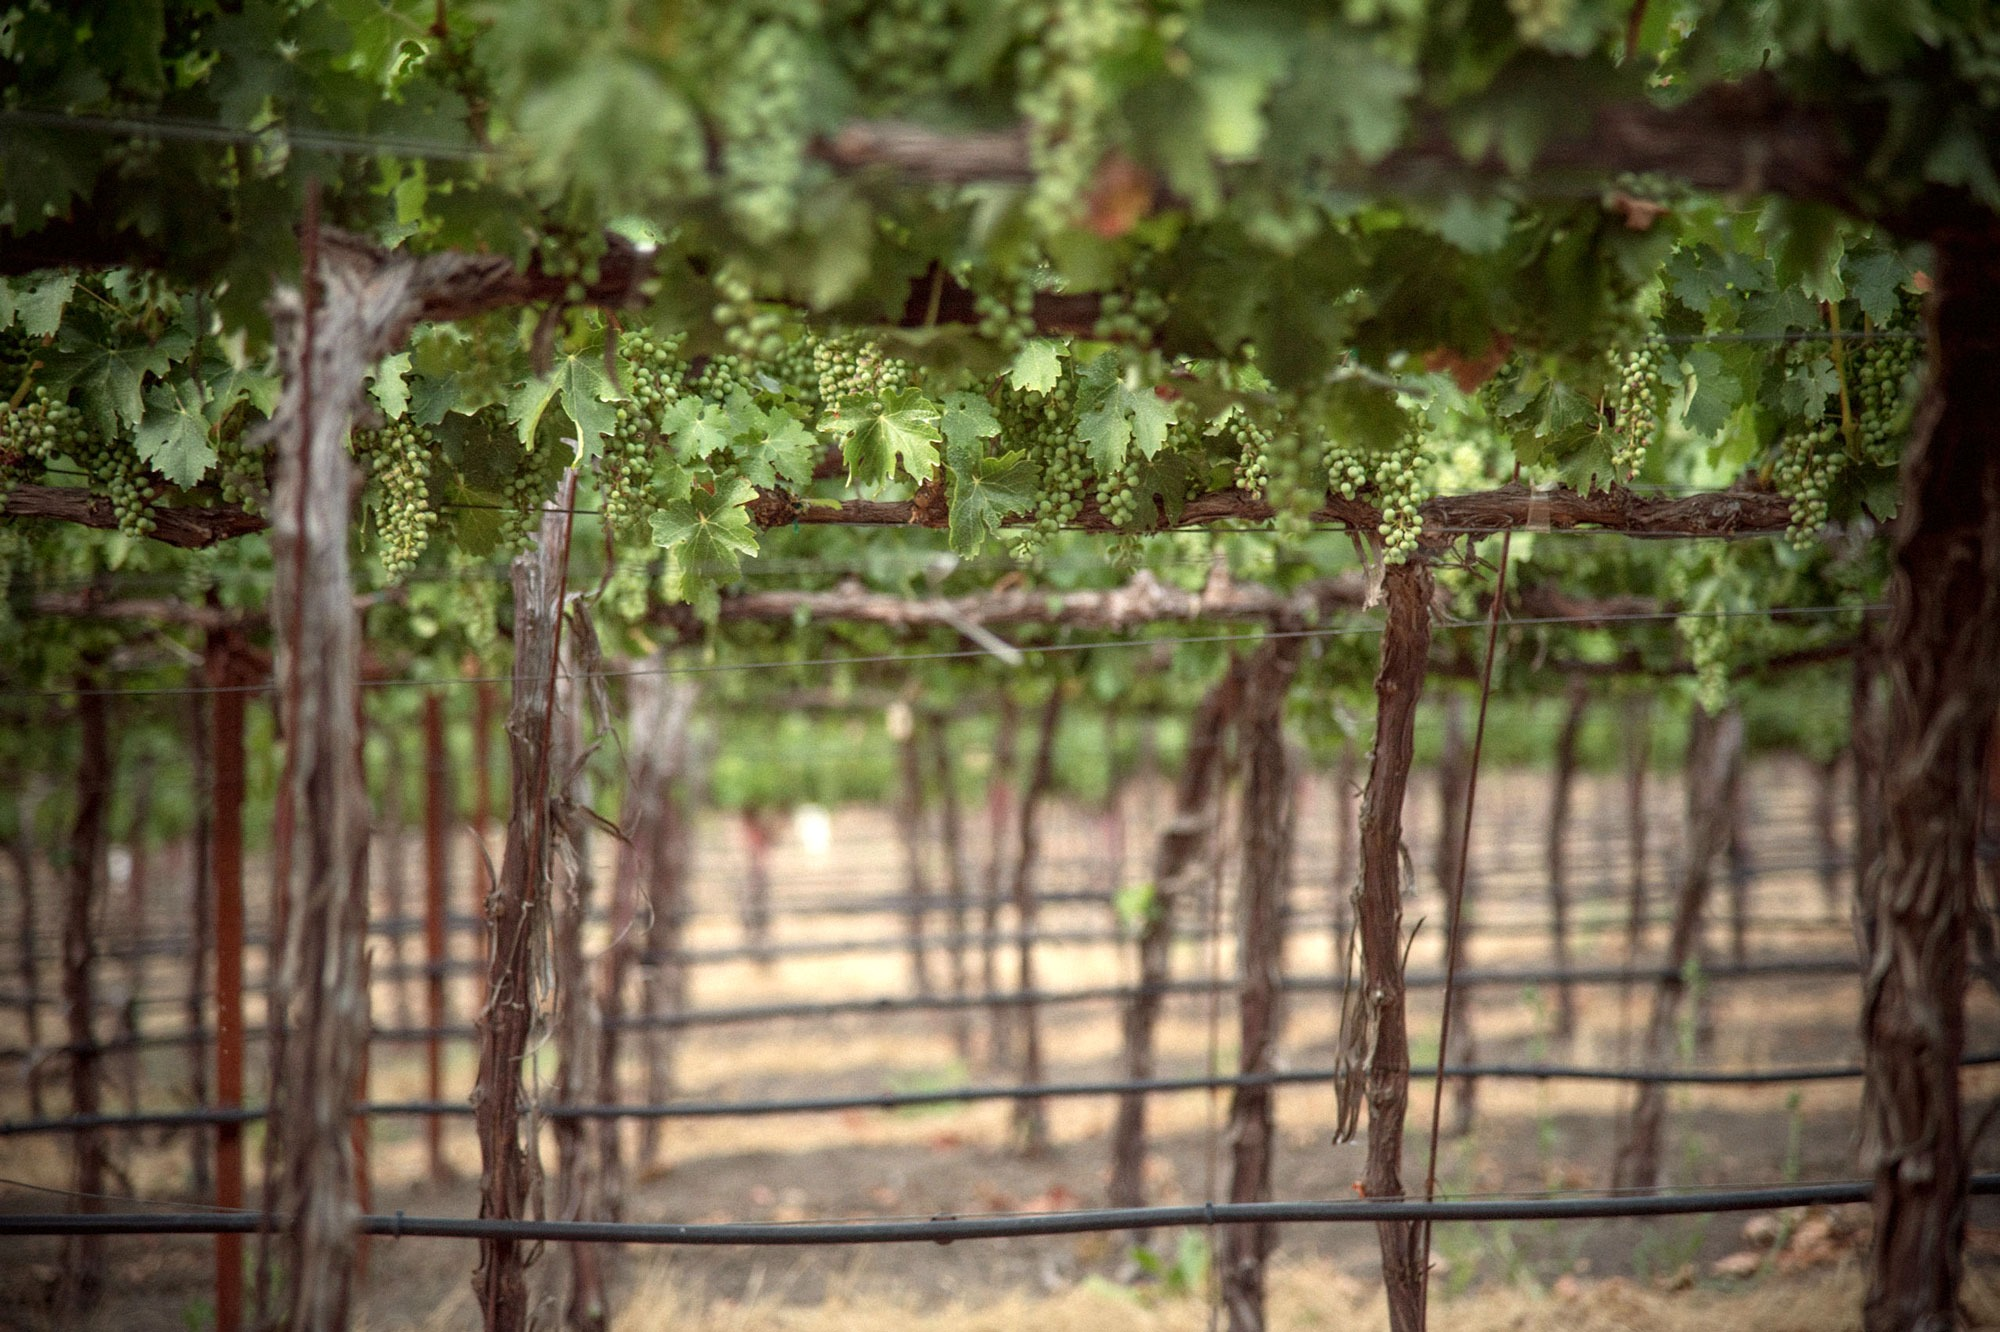 Peering through the rows of Sauvignon Blanc vines at Ryan's Vineyard. Photo by JH Hayes